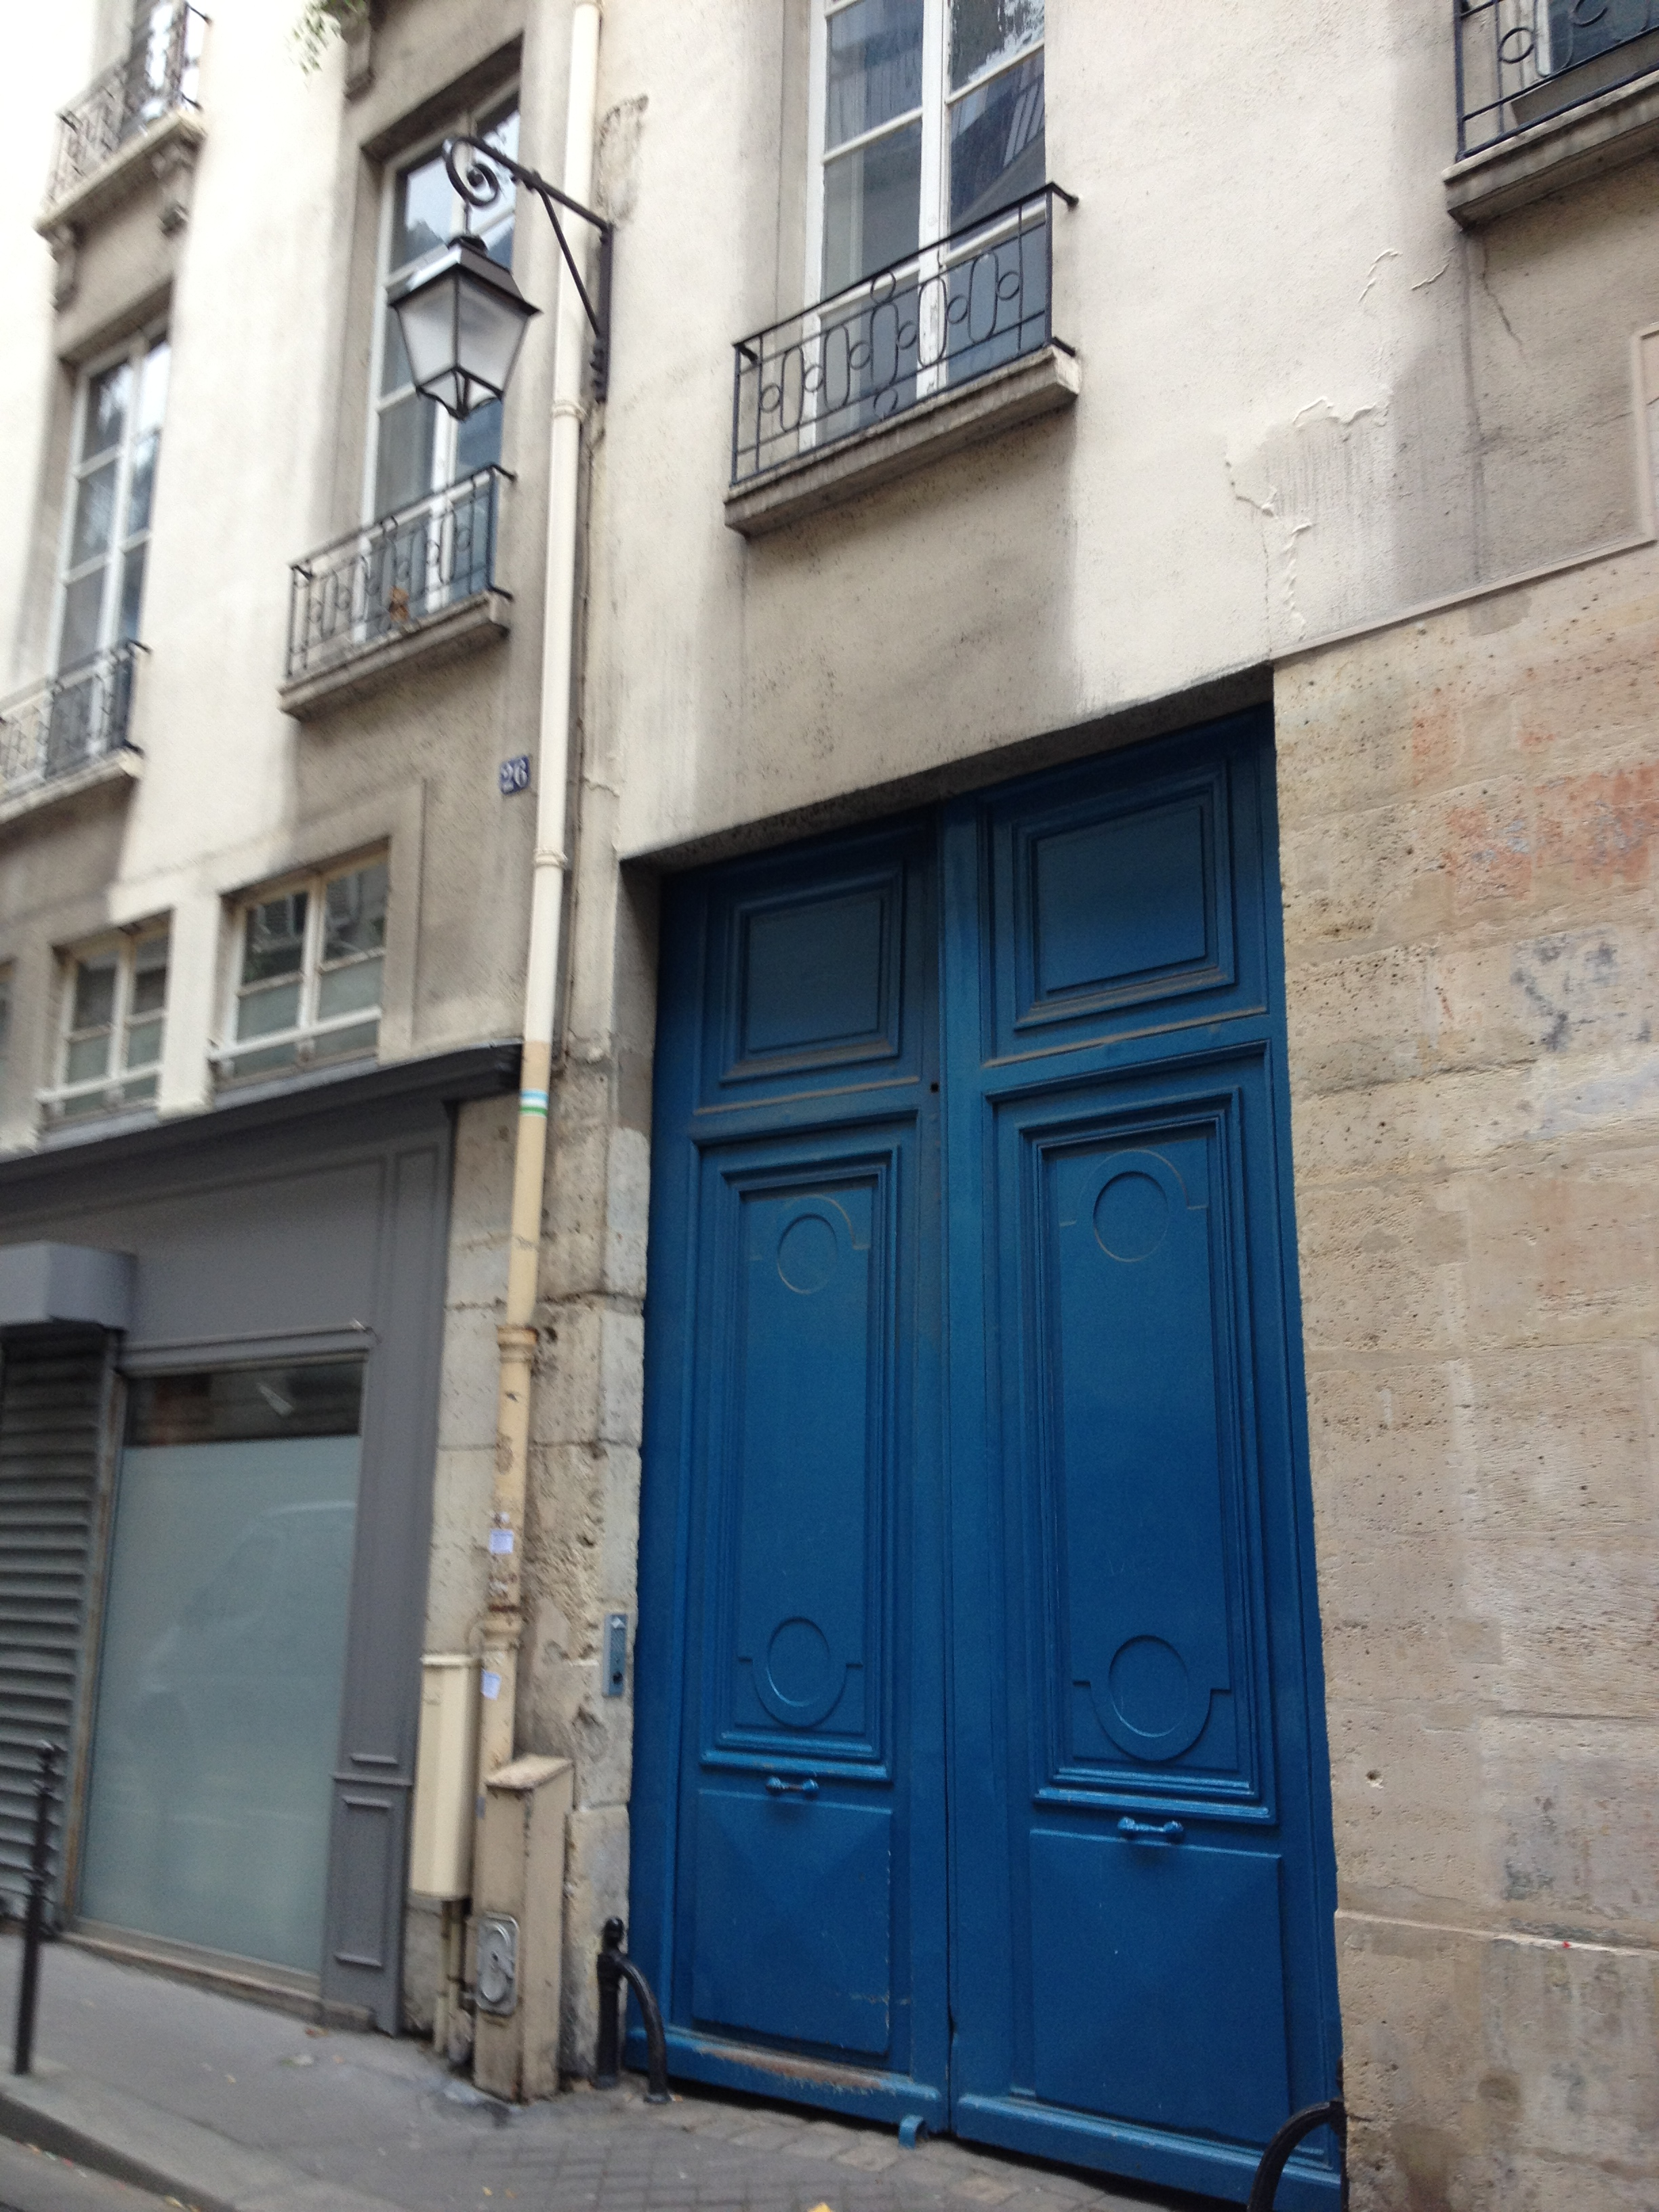 The bright blue doorway to 26 rue de Saintonge